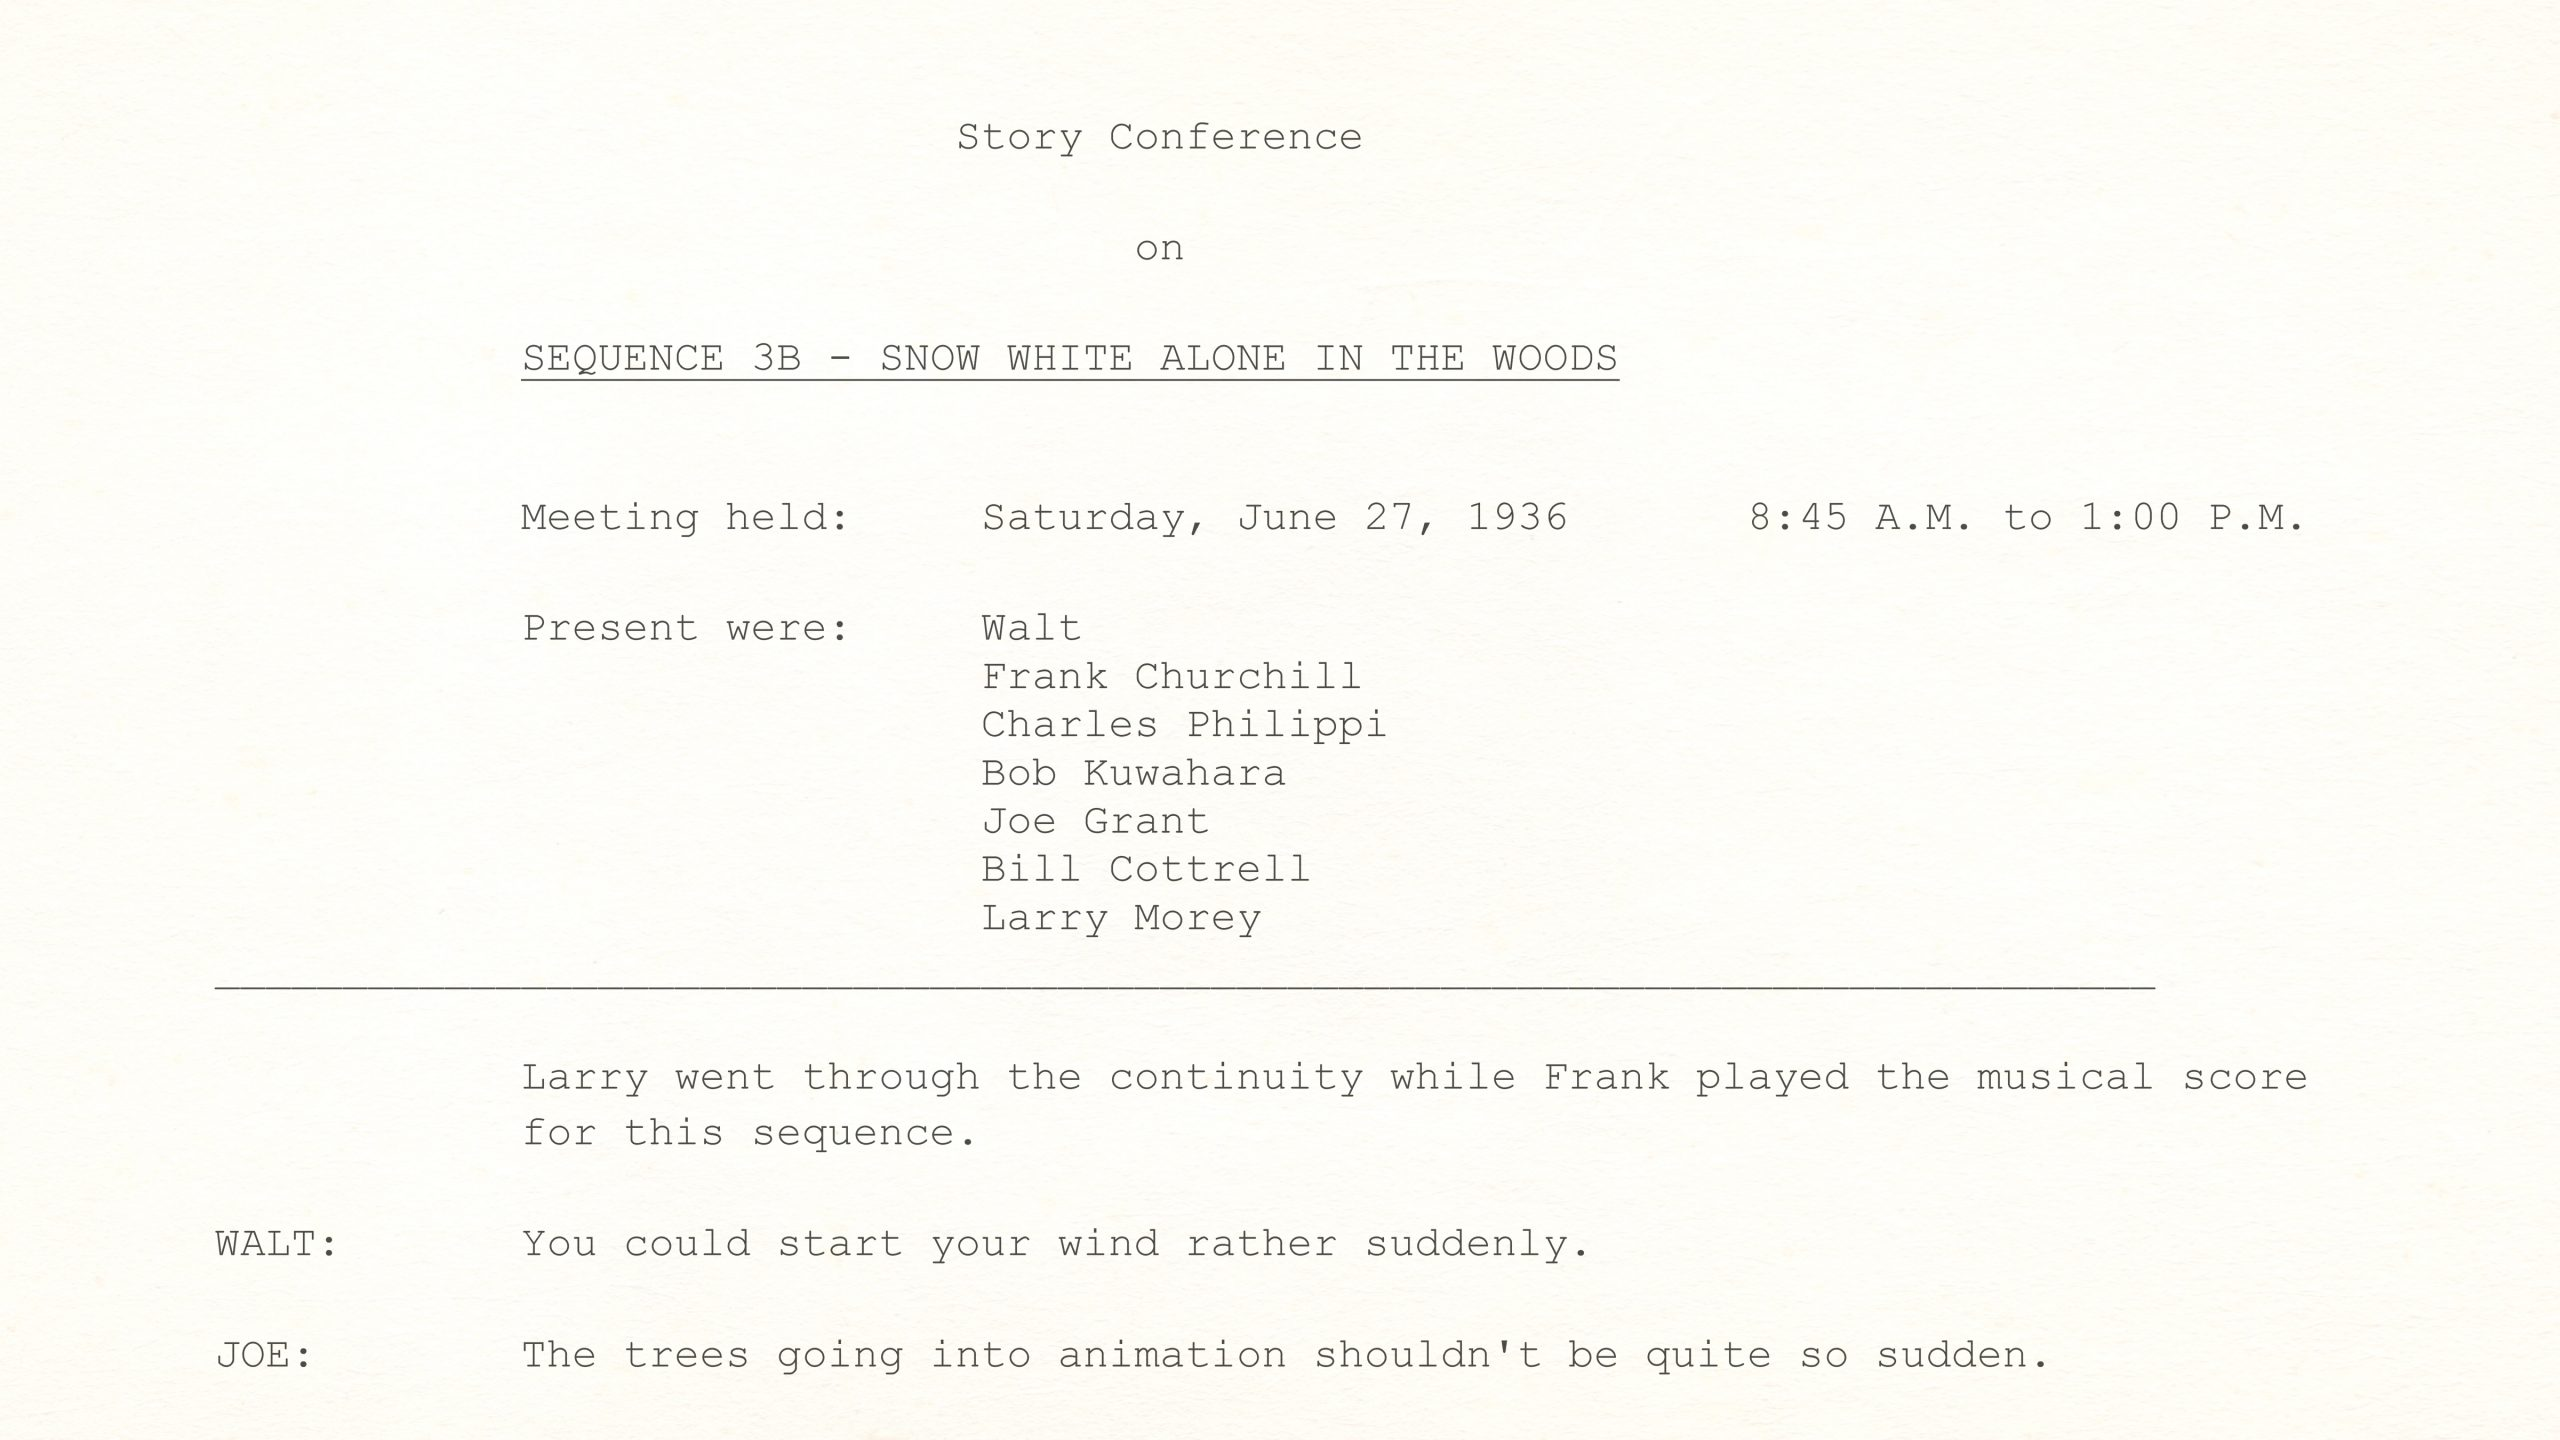 Walt Disney Story Conference on Snow White's ALONE IN THE WOODS SEQUENCE, June 27th, 1936